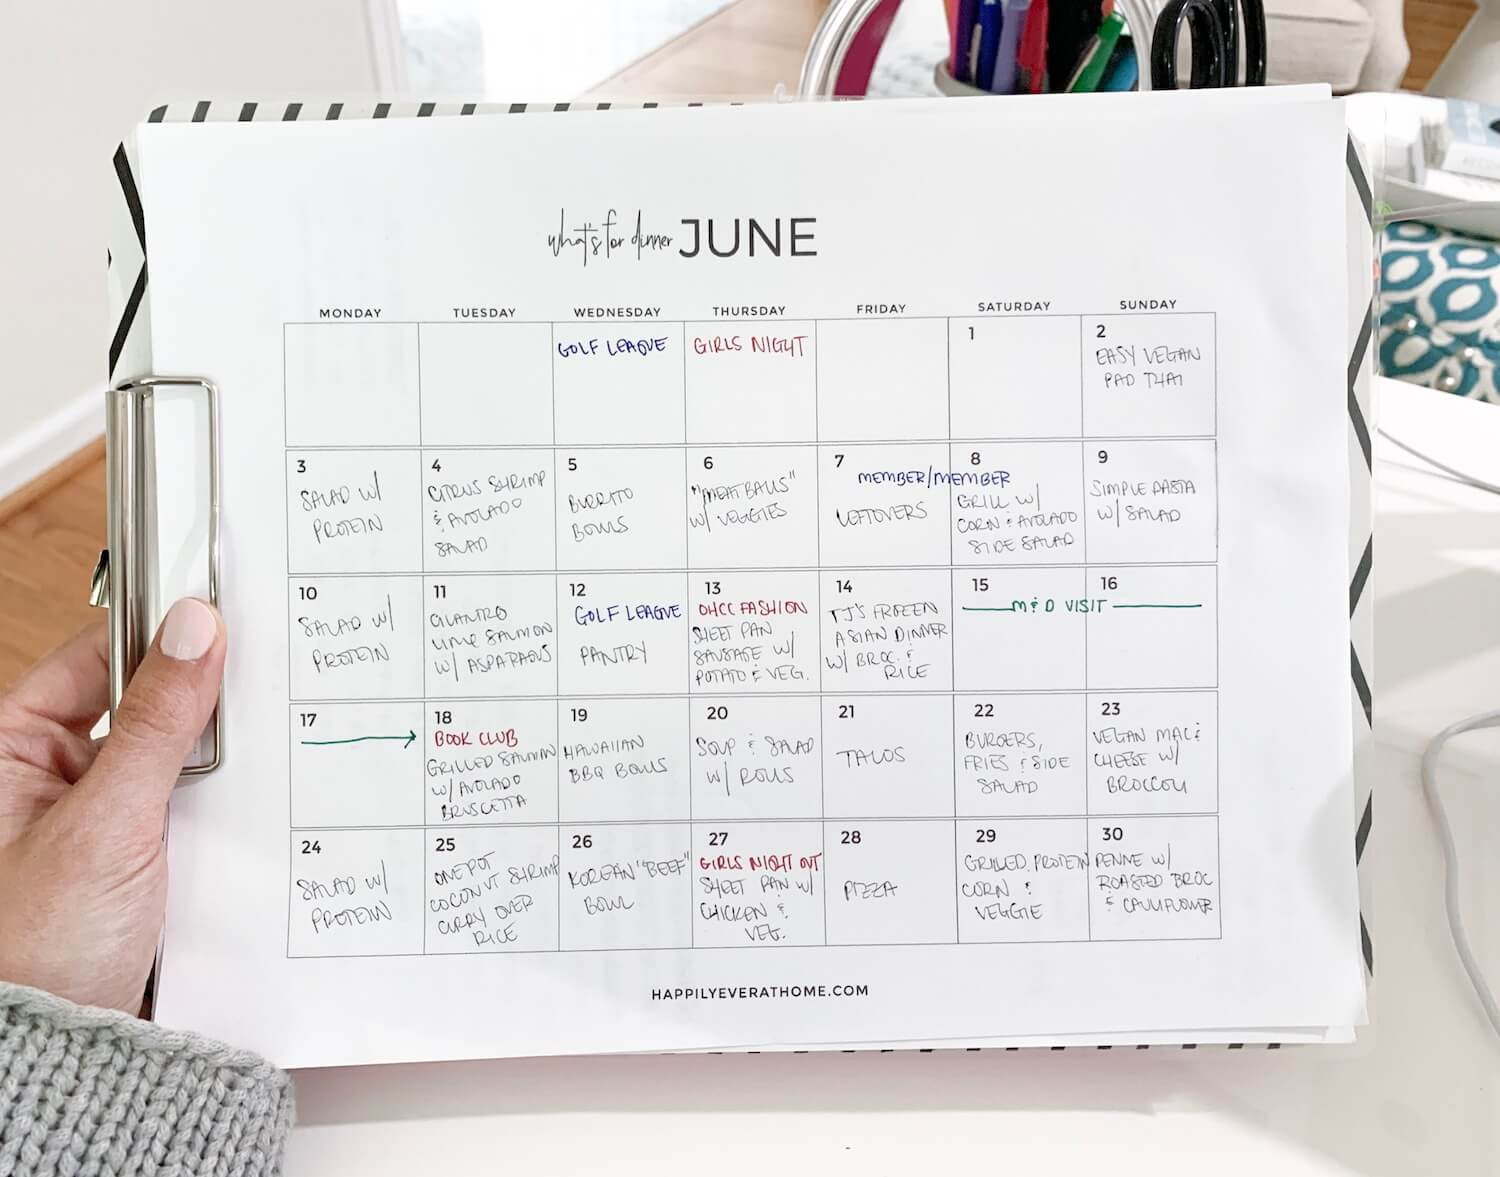 Monthly meal plan for the month of June